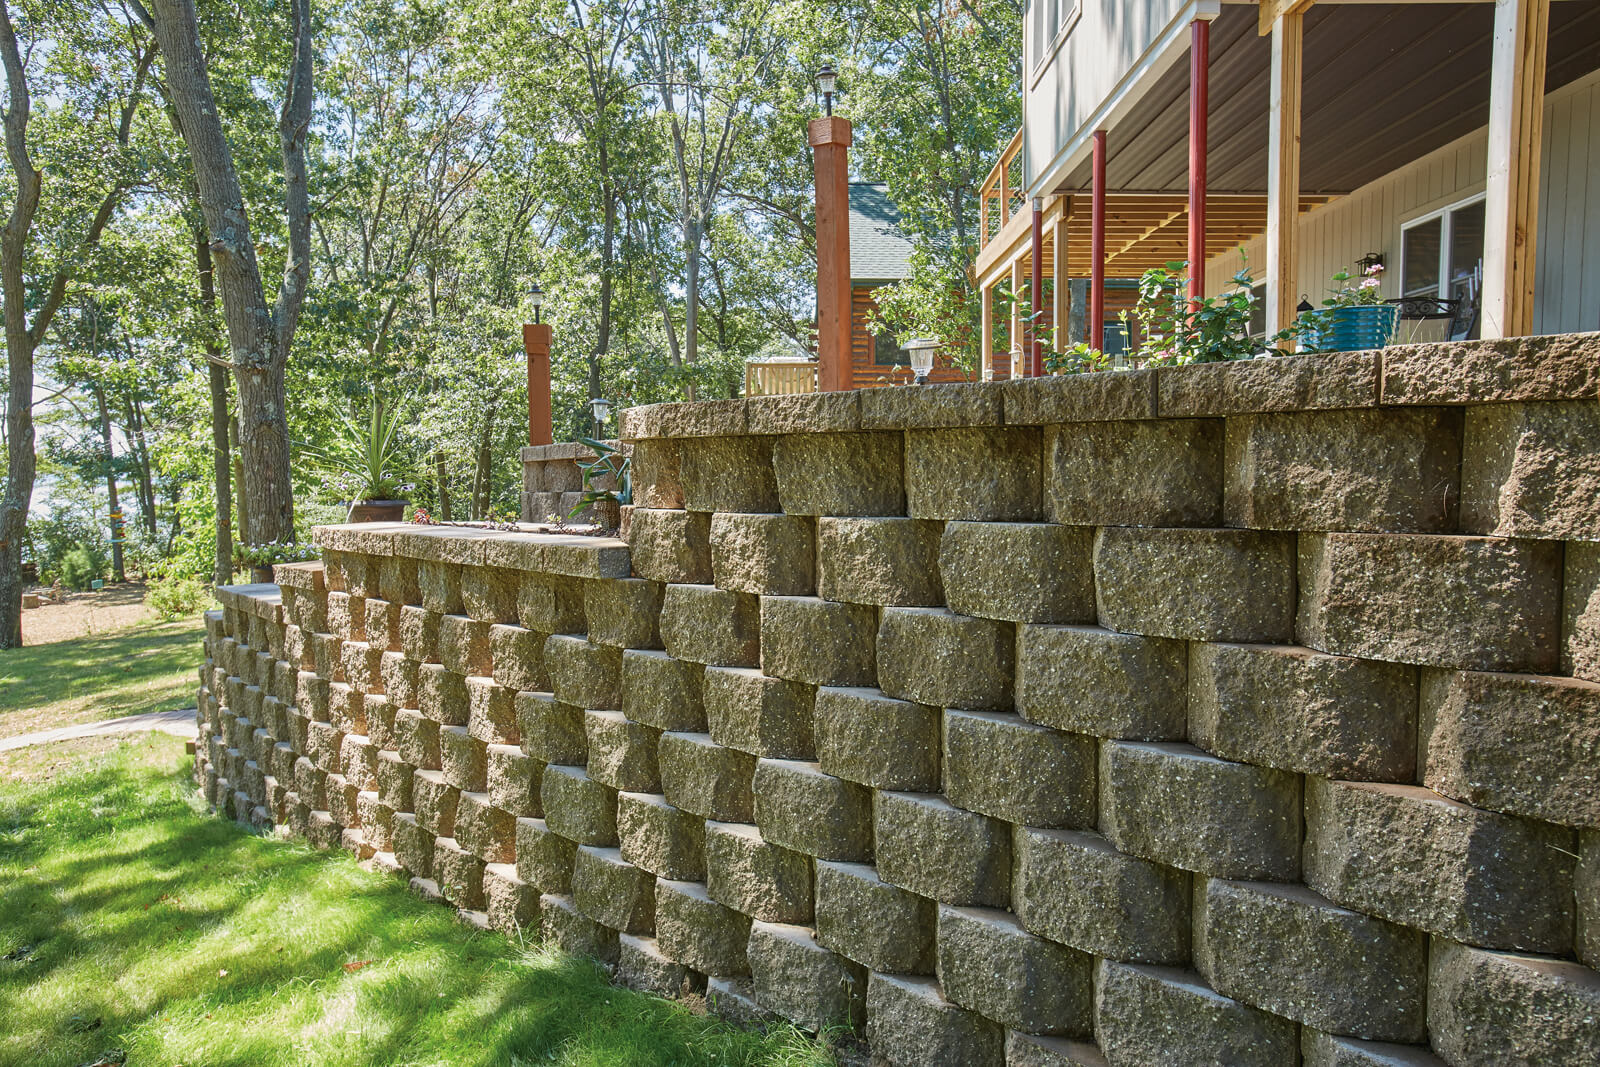 Block retainer wall in the lake clipart image black and white library Terrace Stone® image black and white library